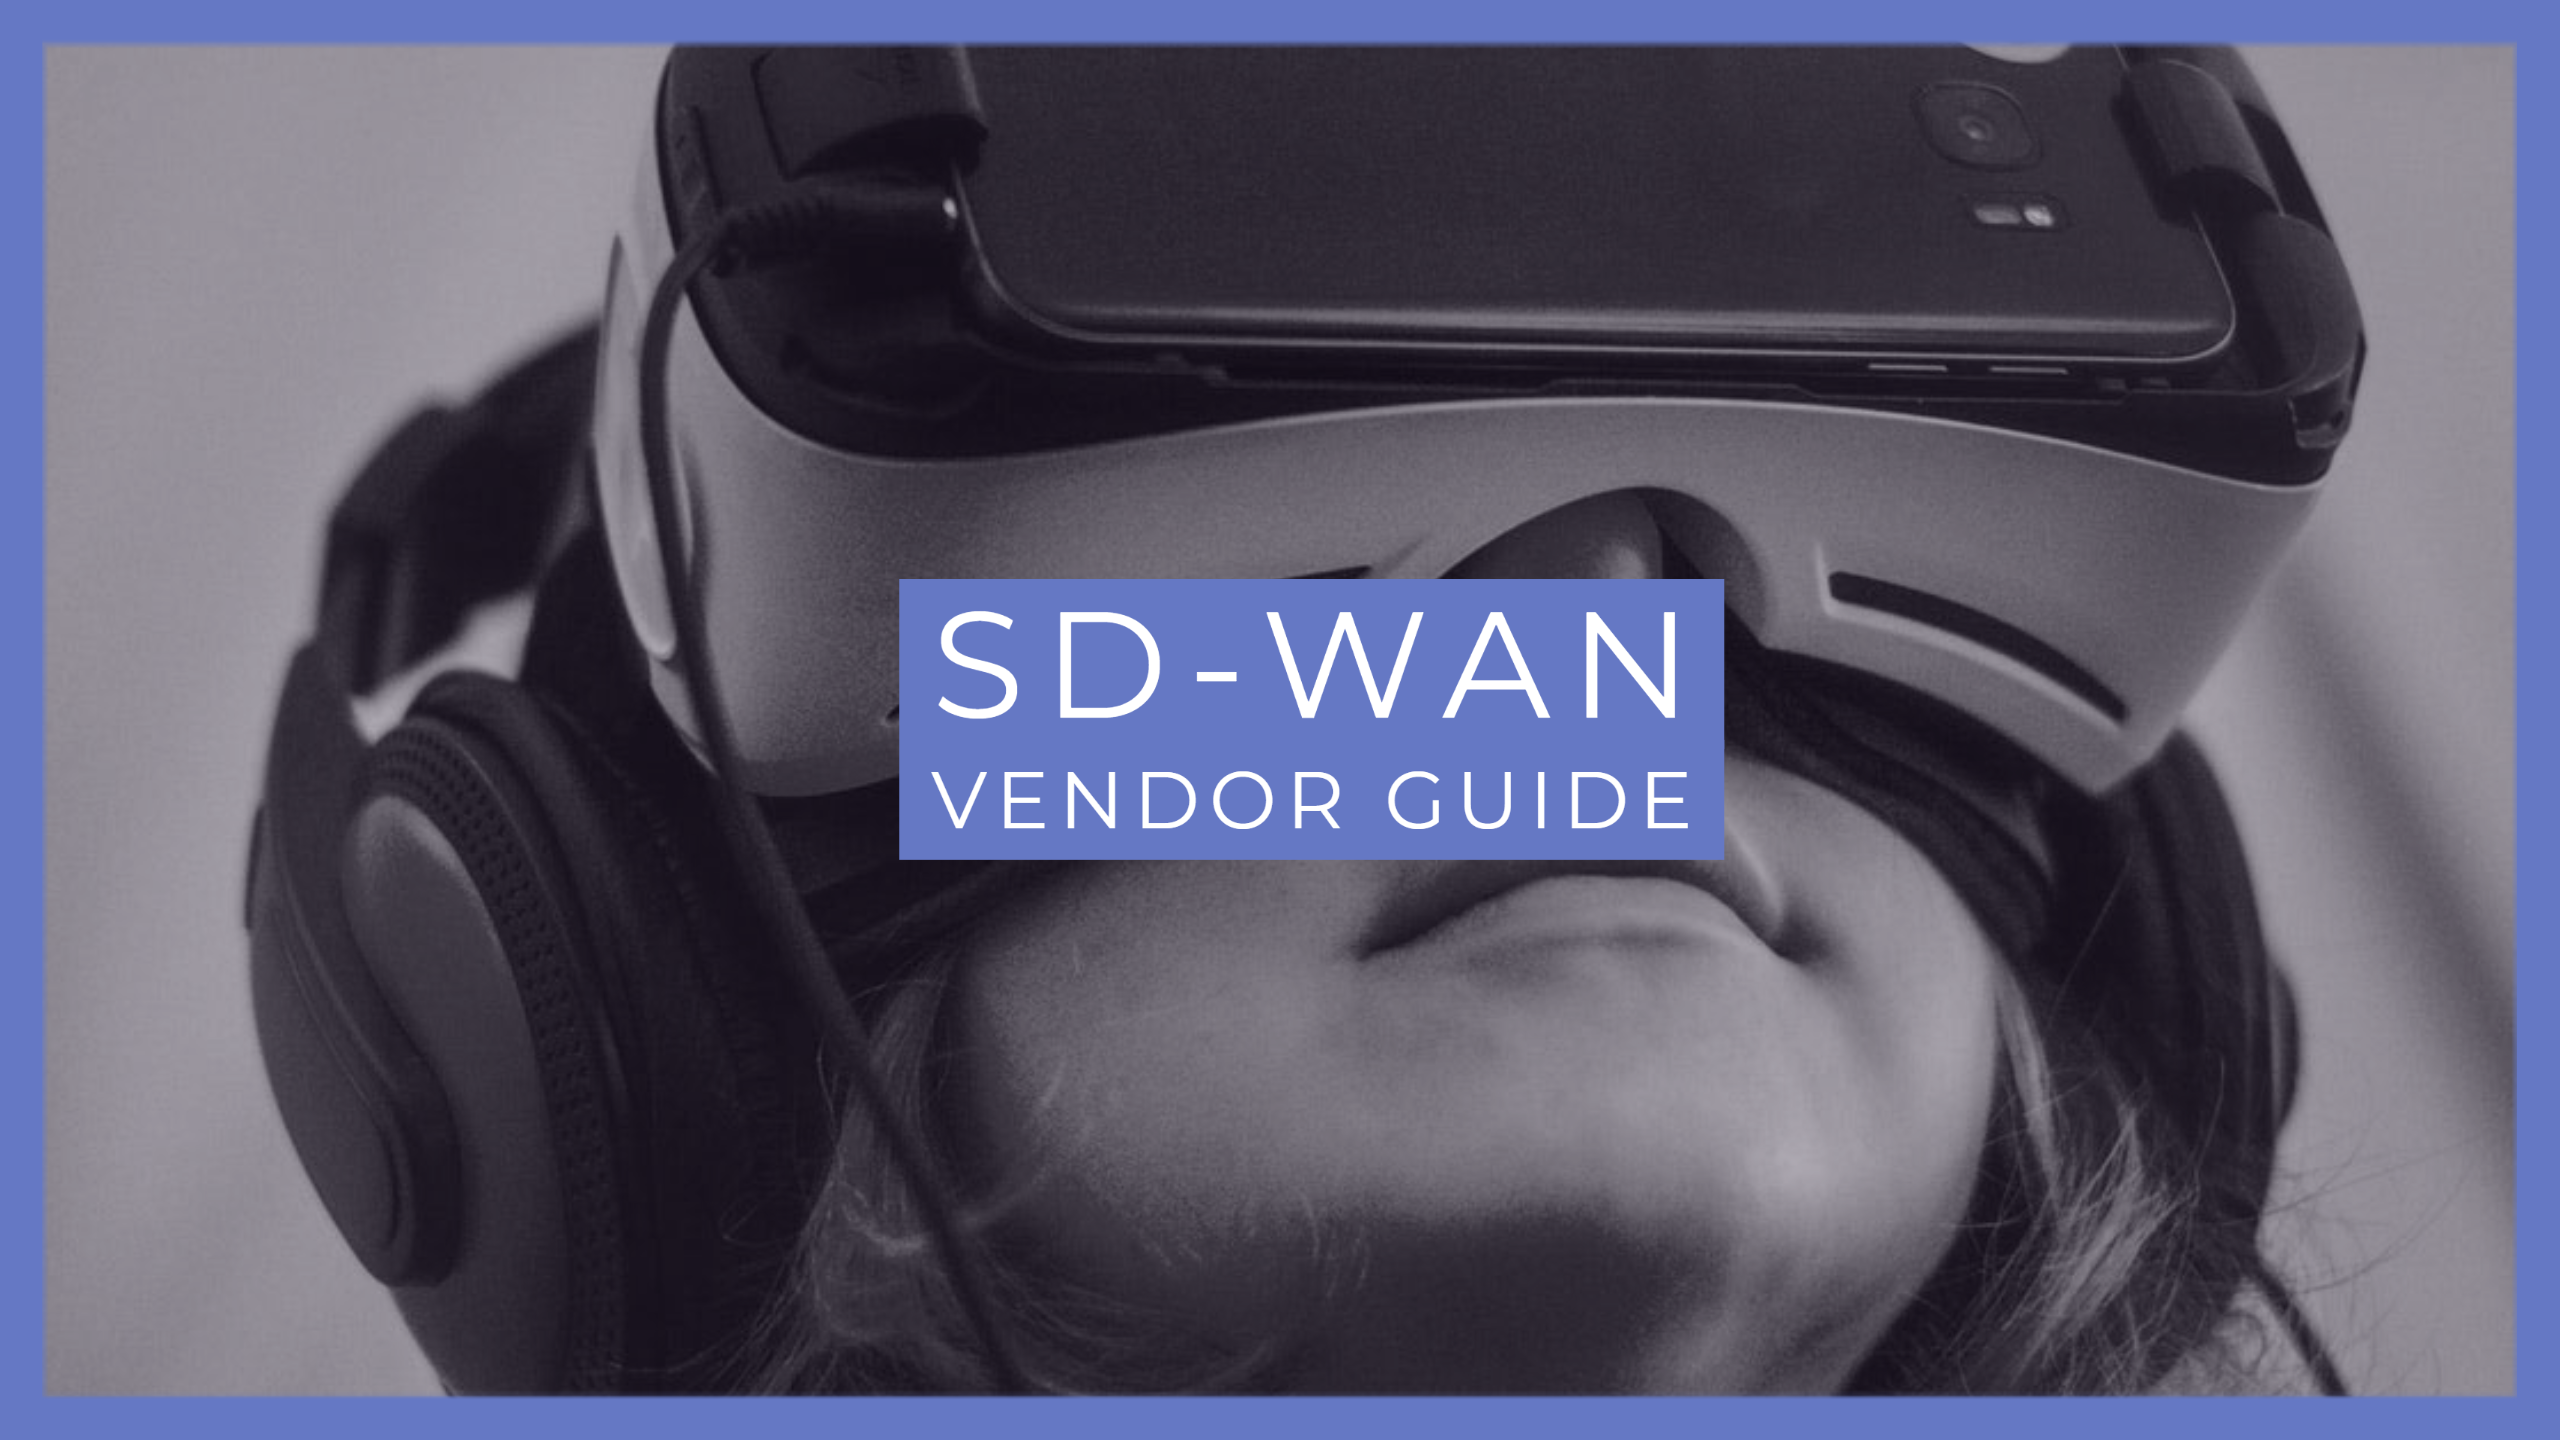 sd-wan-vendor-guide